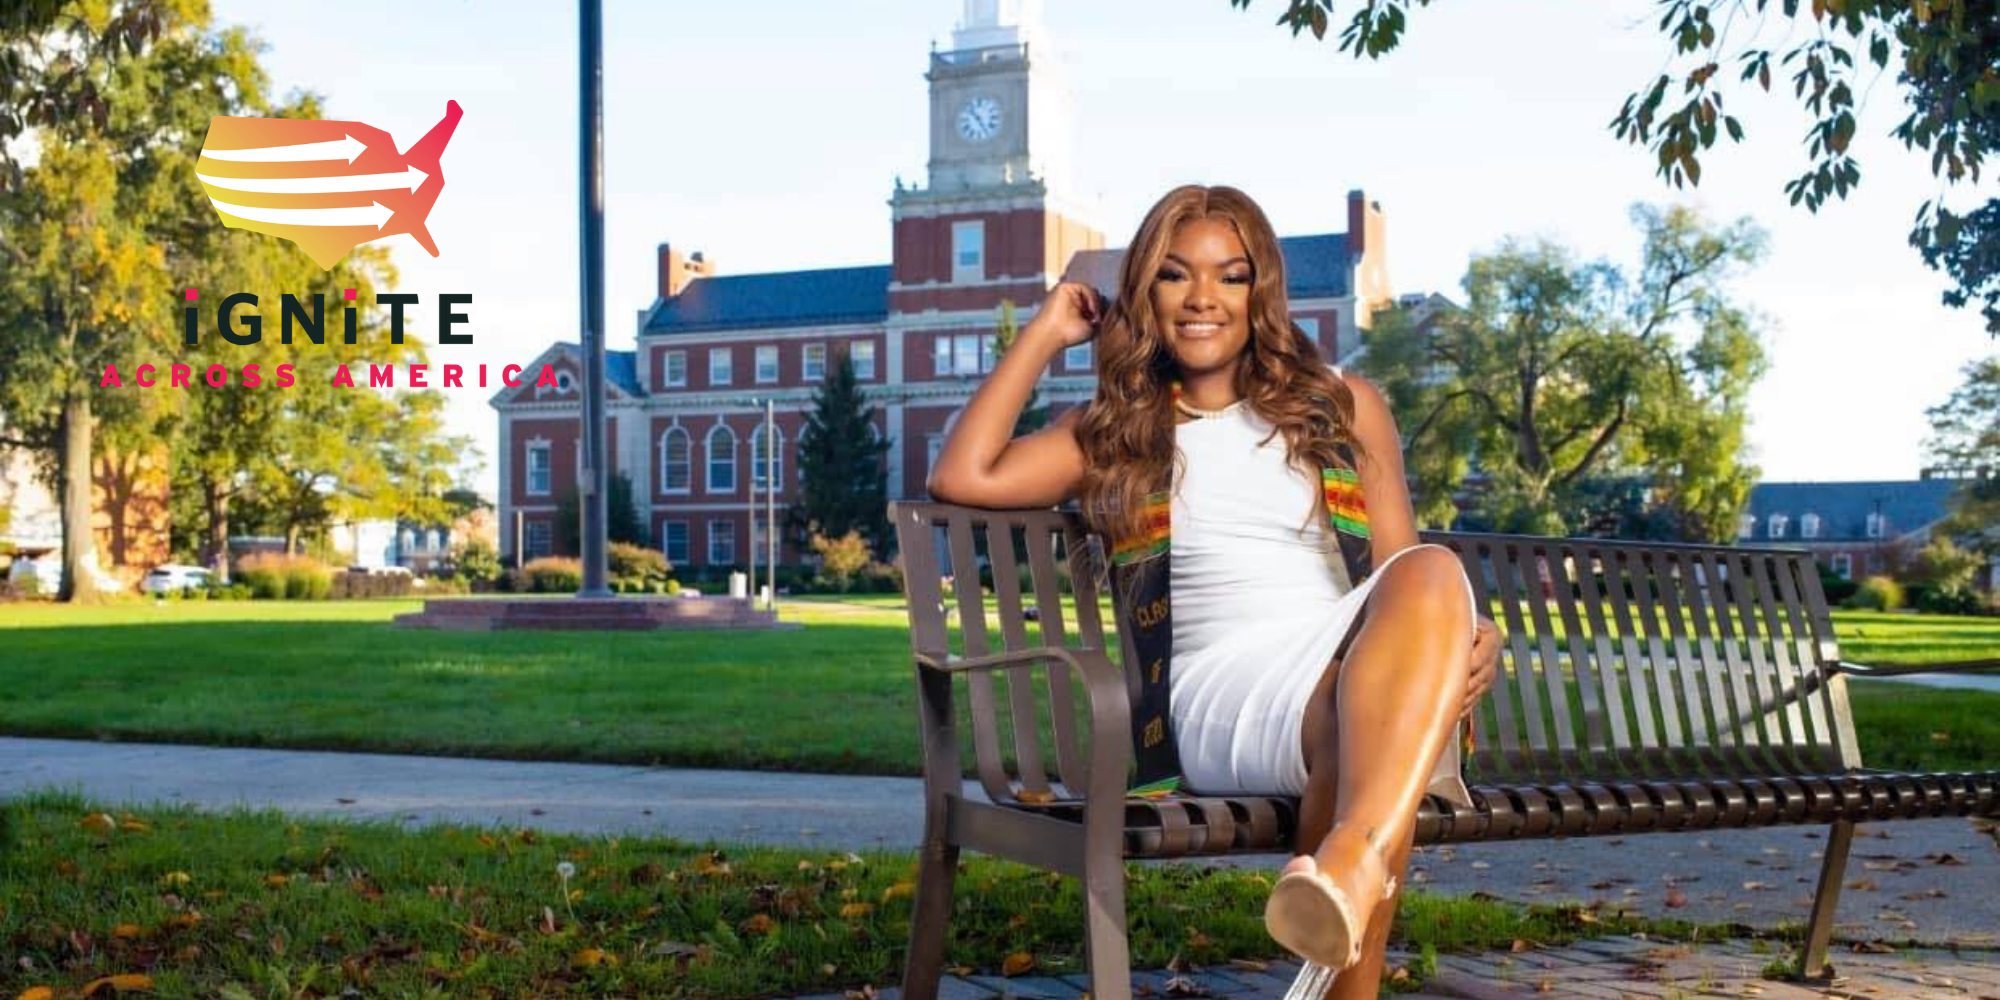 From social worker to candidate: Sherlyna's story